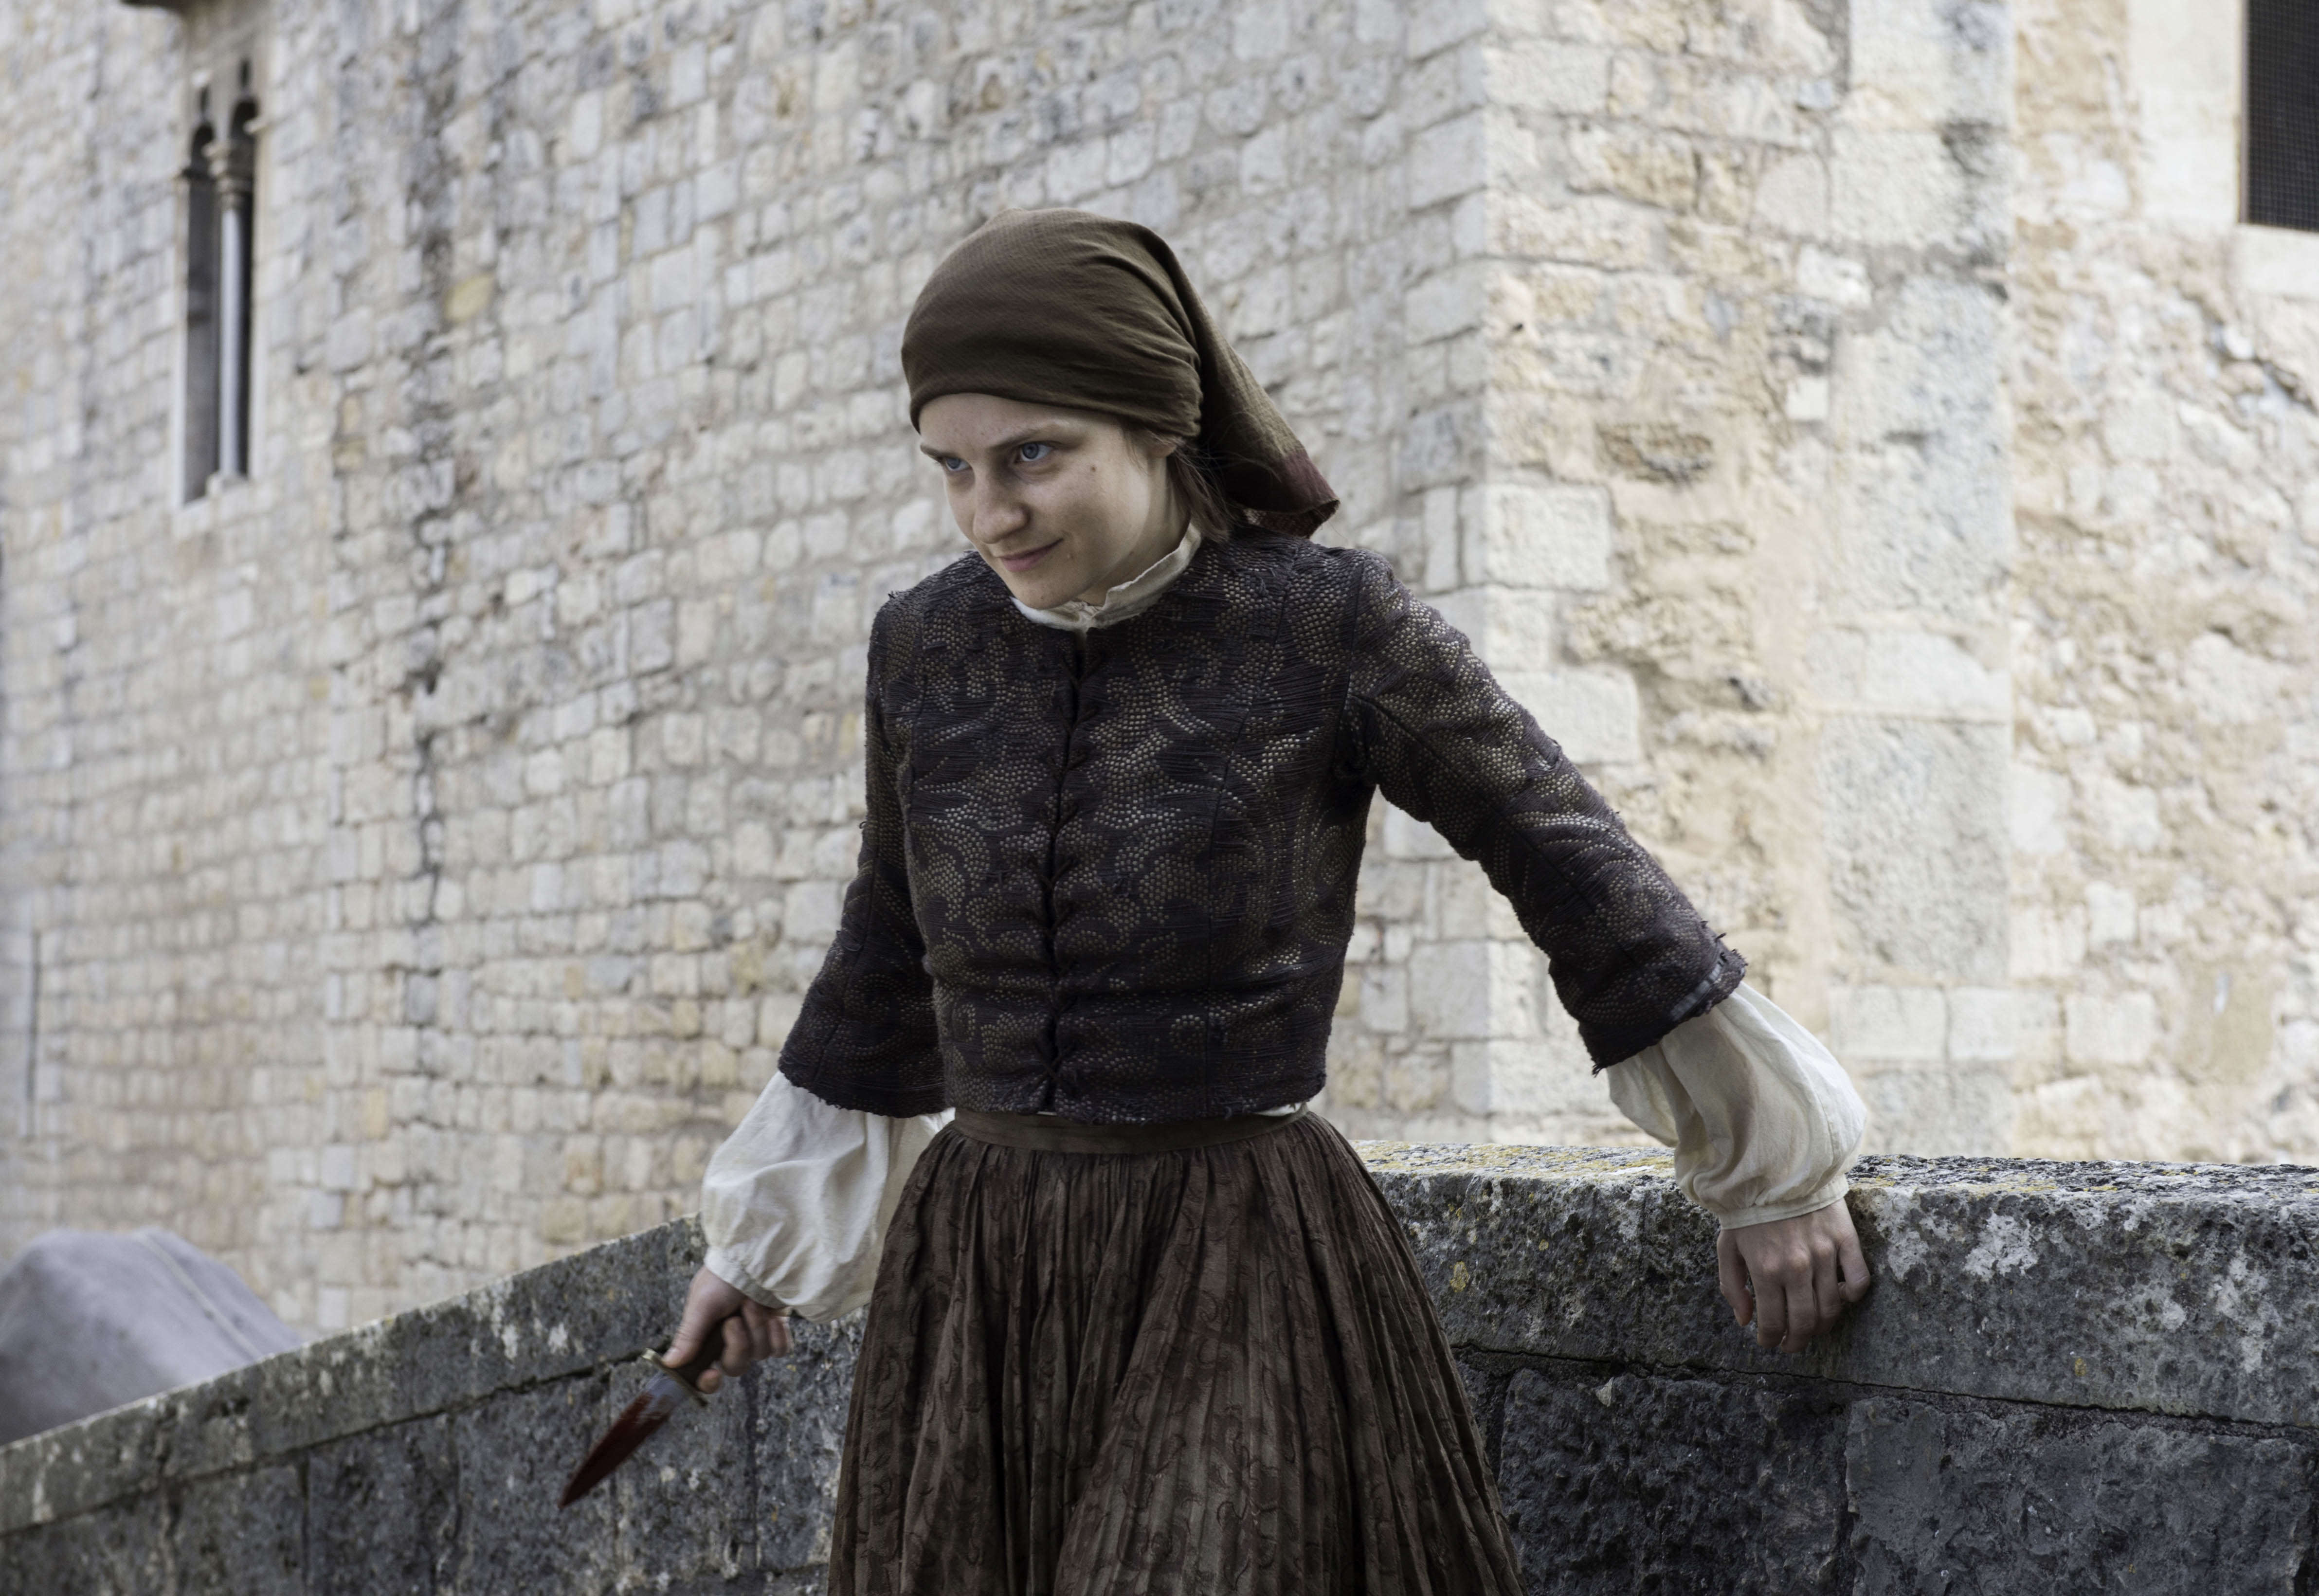 Game Of Thrones The Waif Looks VERY Different In Real Life The Broken Man 25